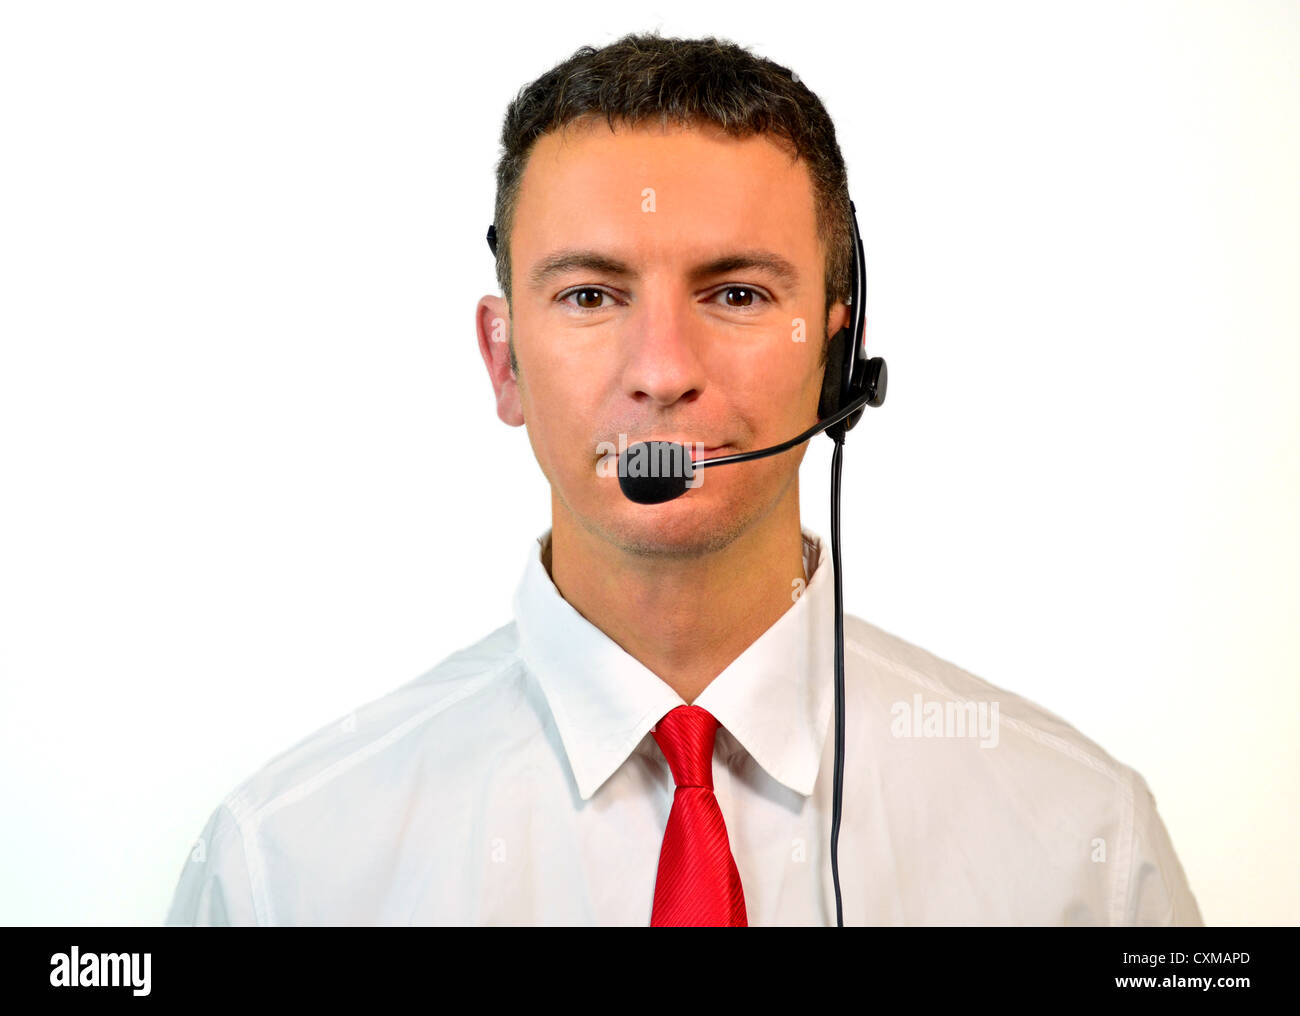 Good looking young man, at sales or support department, with headset Stock Photo